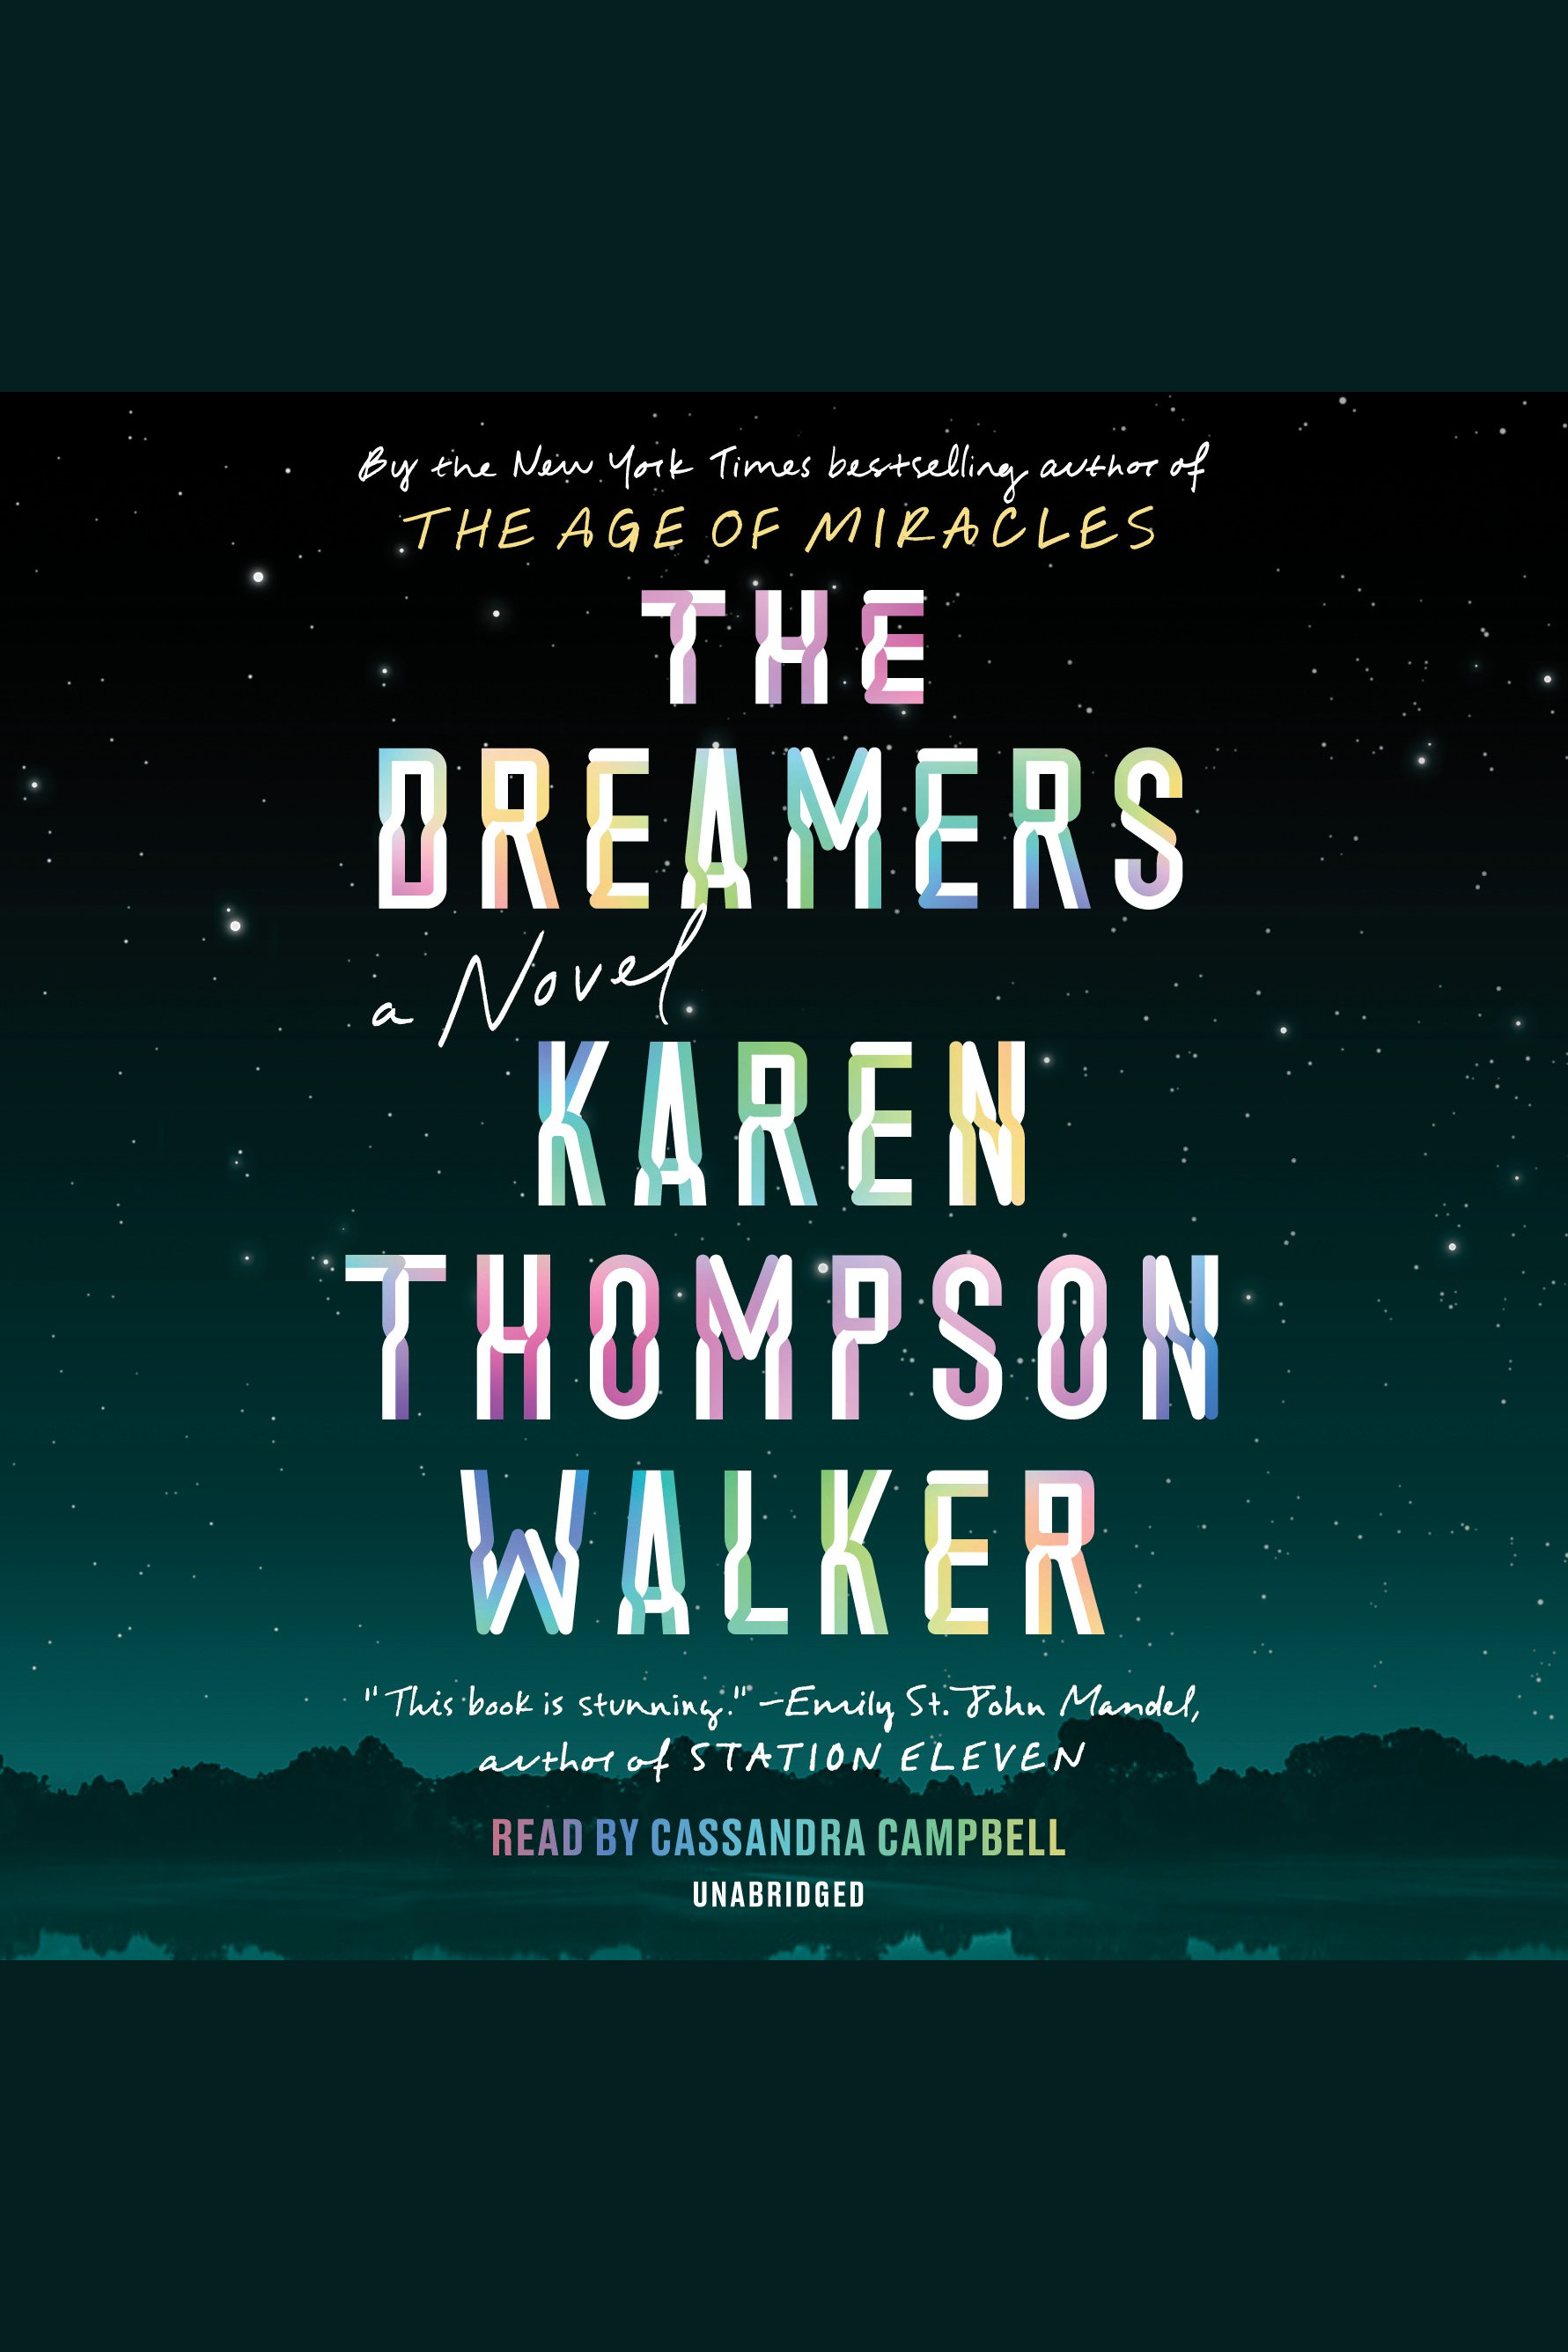 Dreamers, The [electronic resource] : A Novel